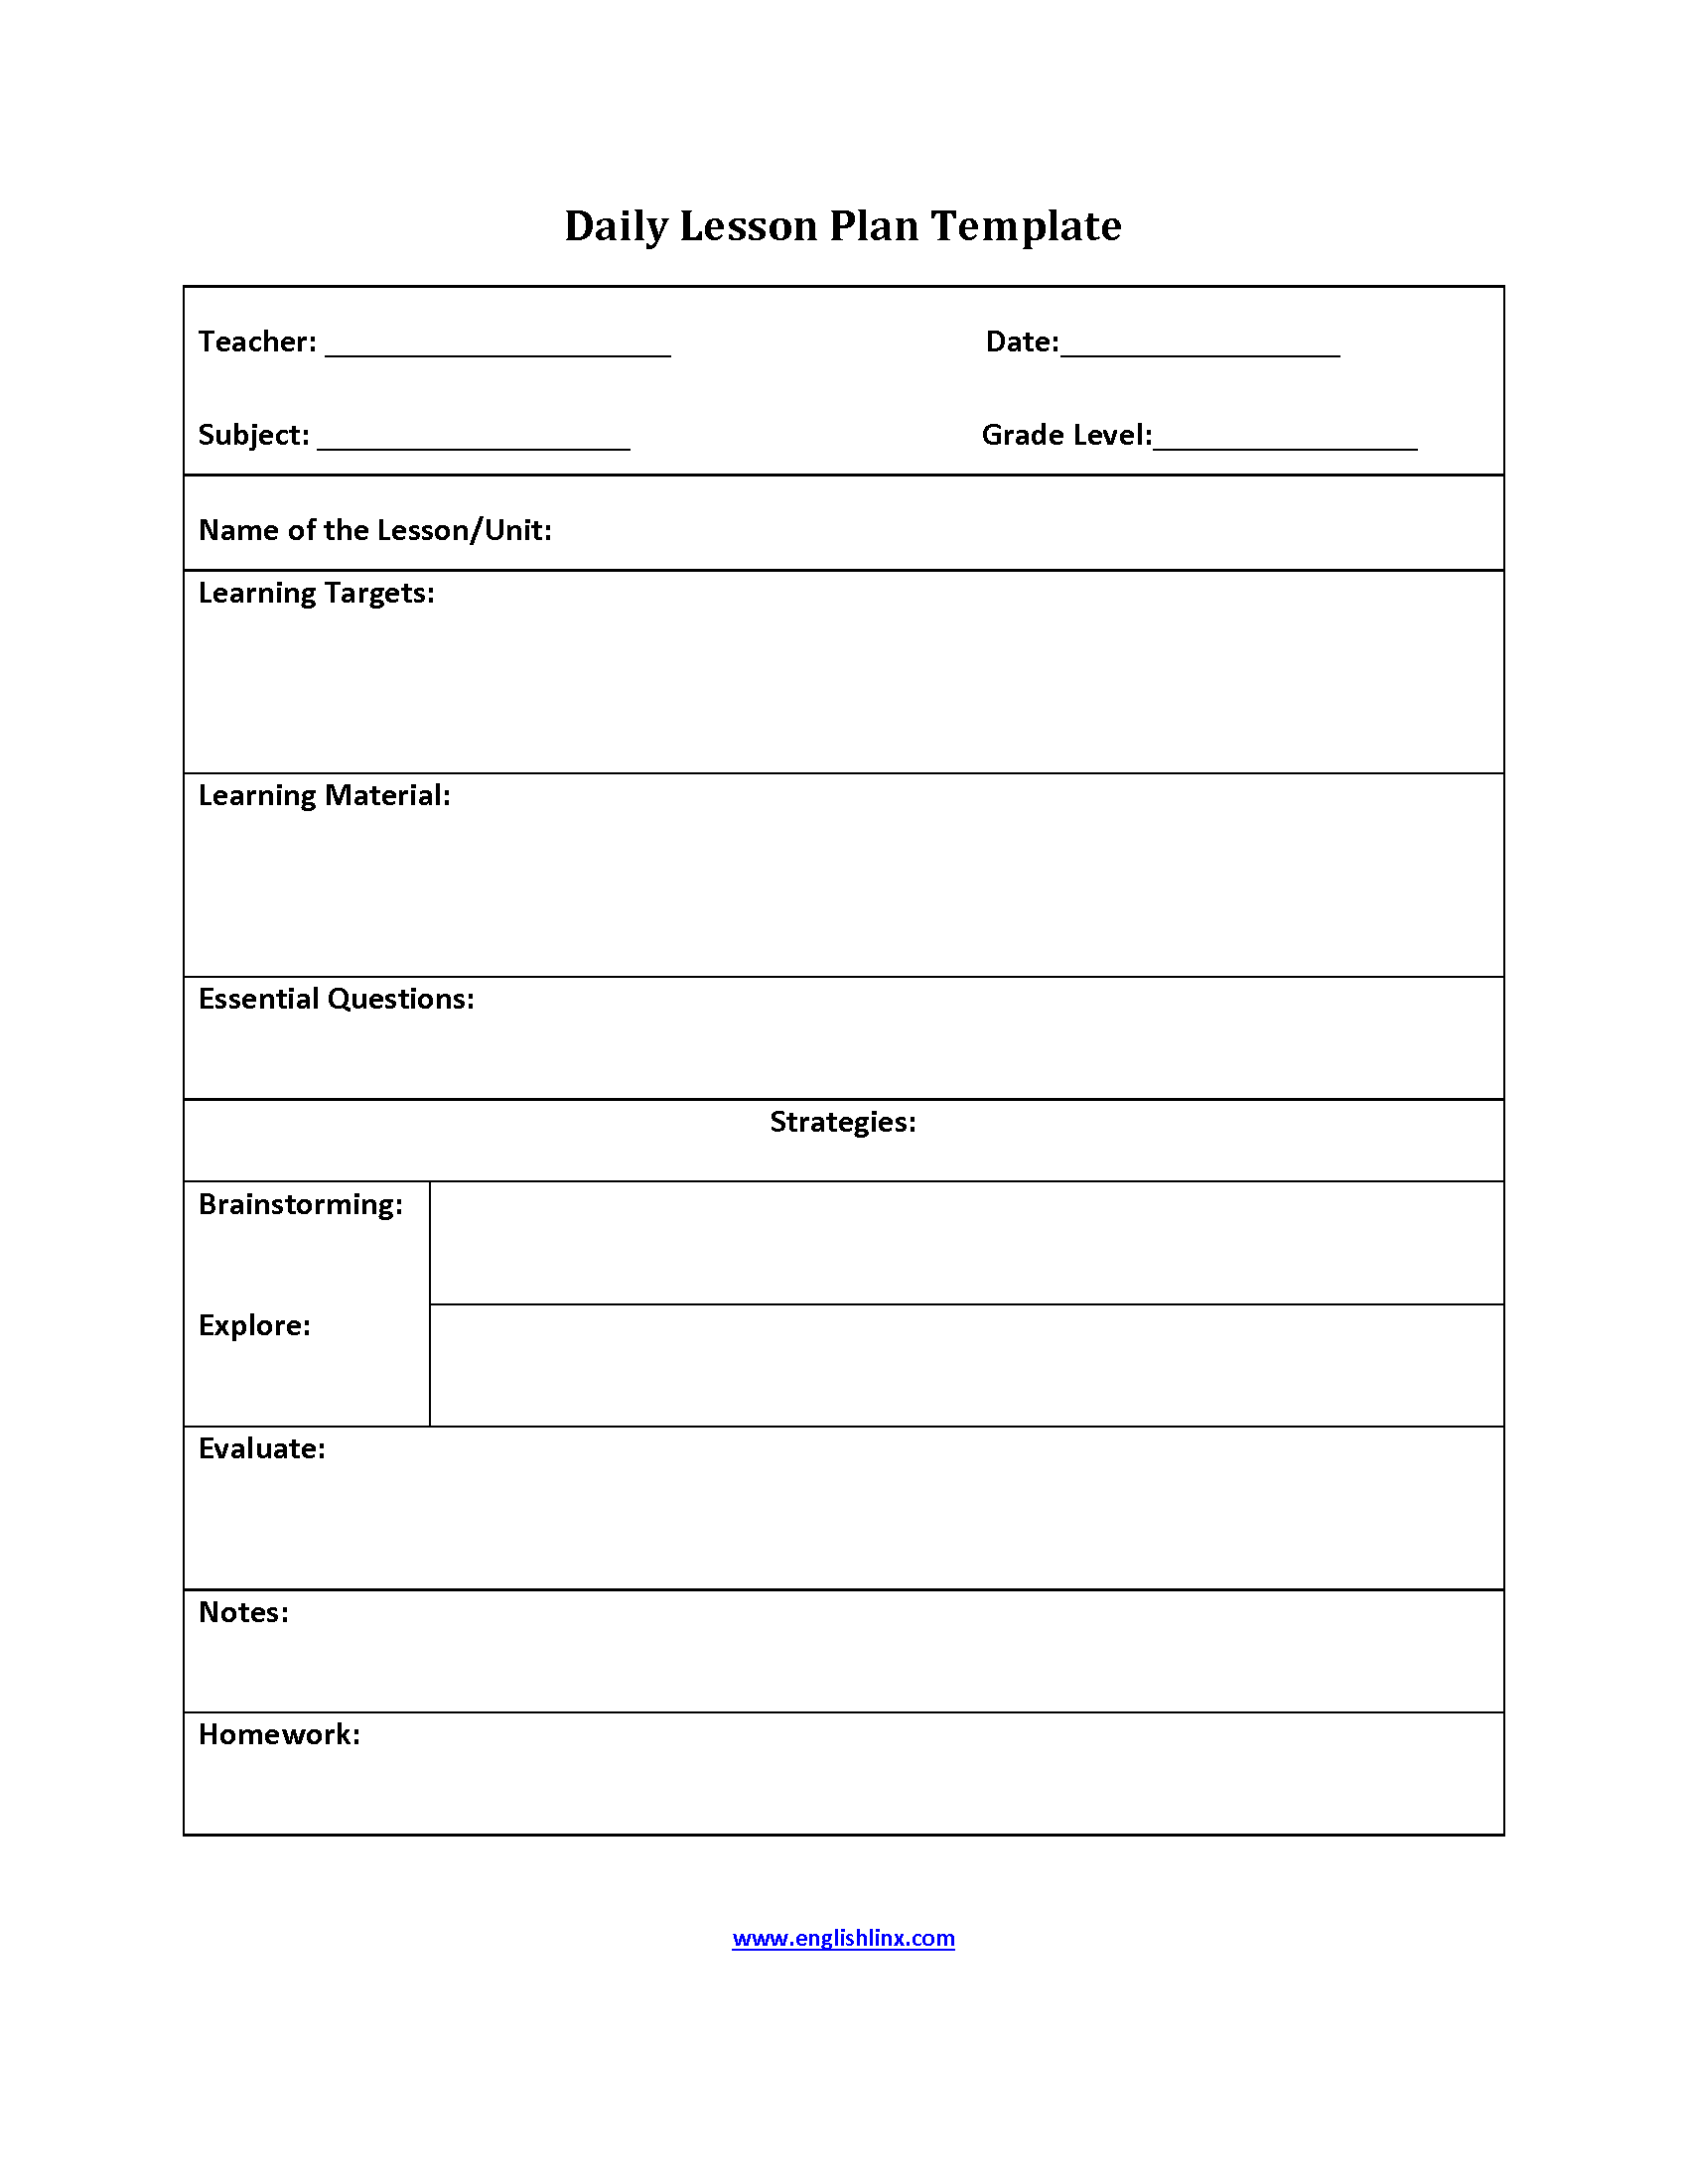 Englishlinxcom Lesson Plan Template - Lesson plan template free